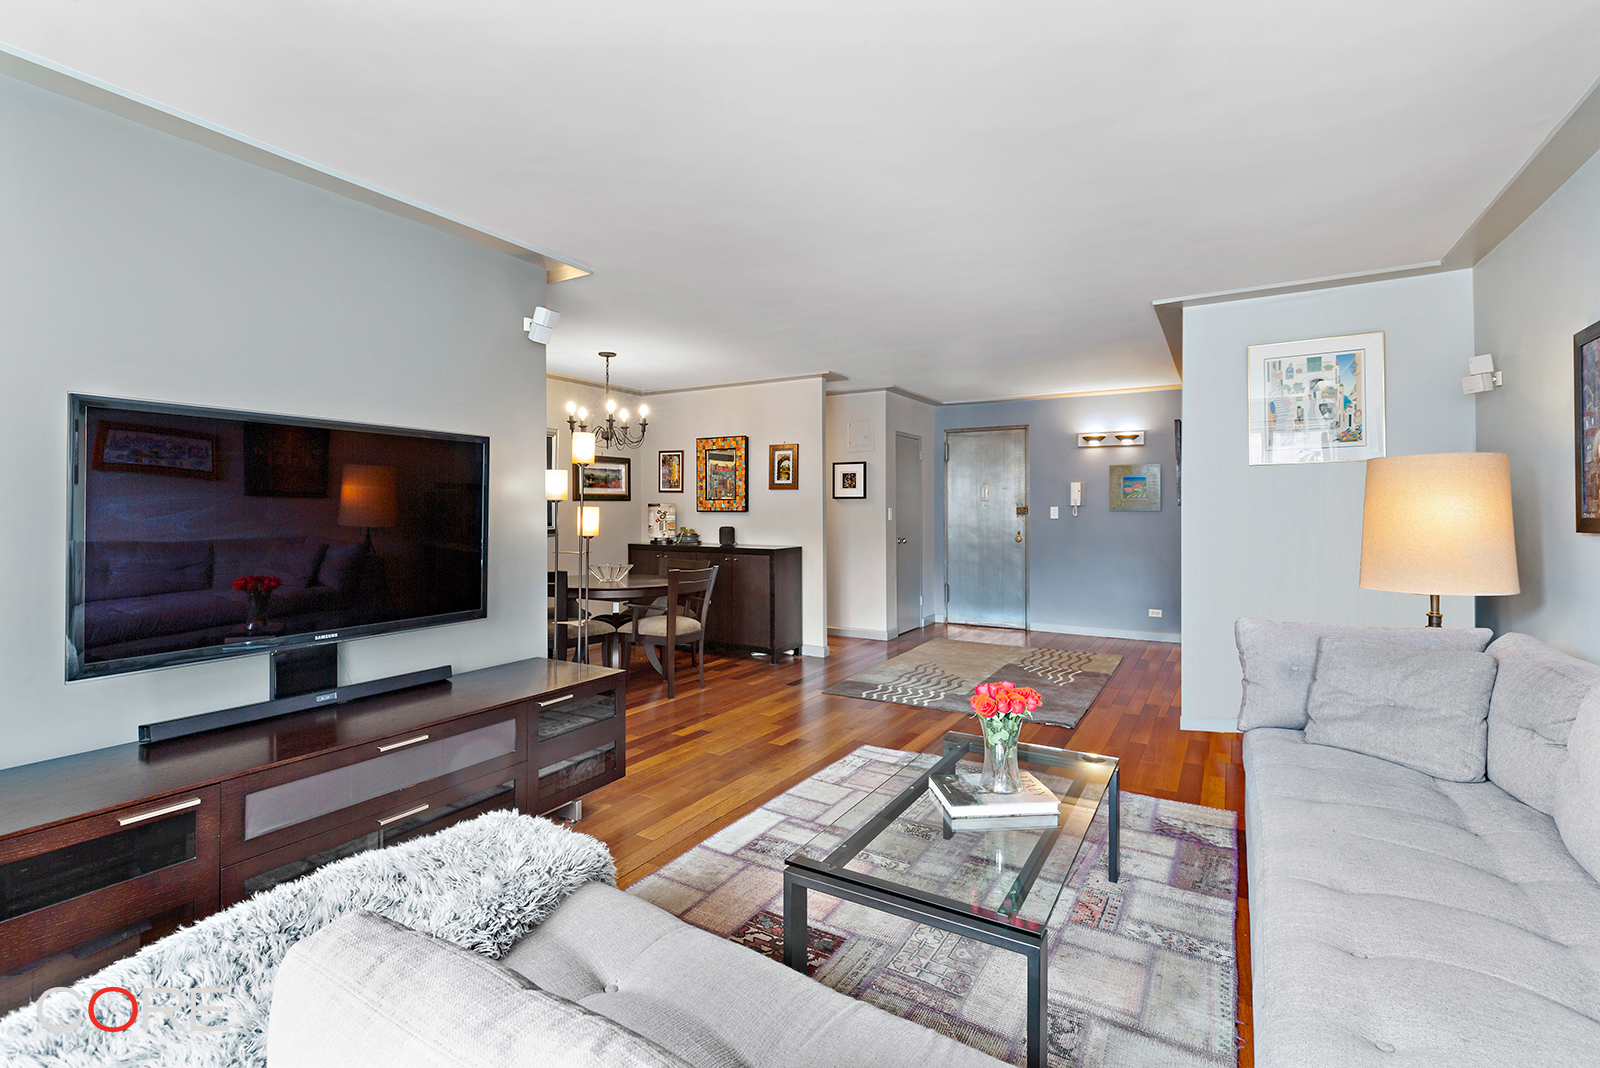 Apartment for sale at 79 West 12th Street, Apt 10G